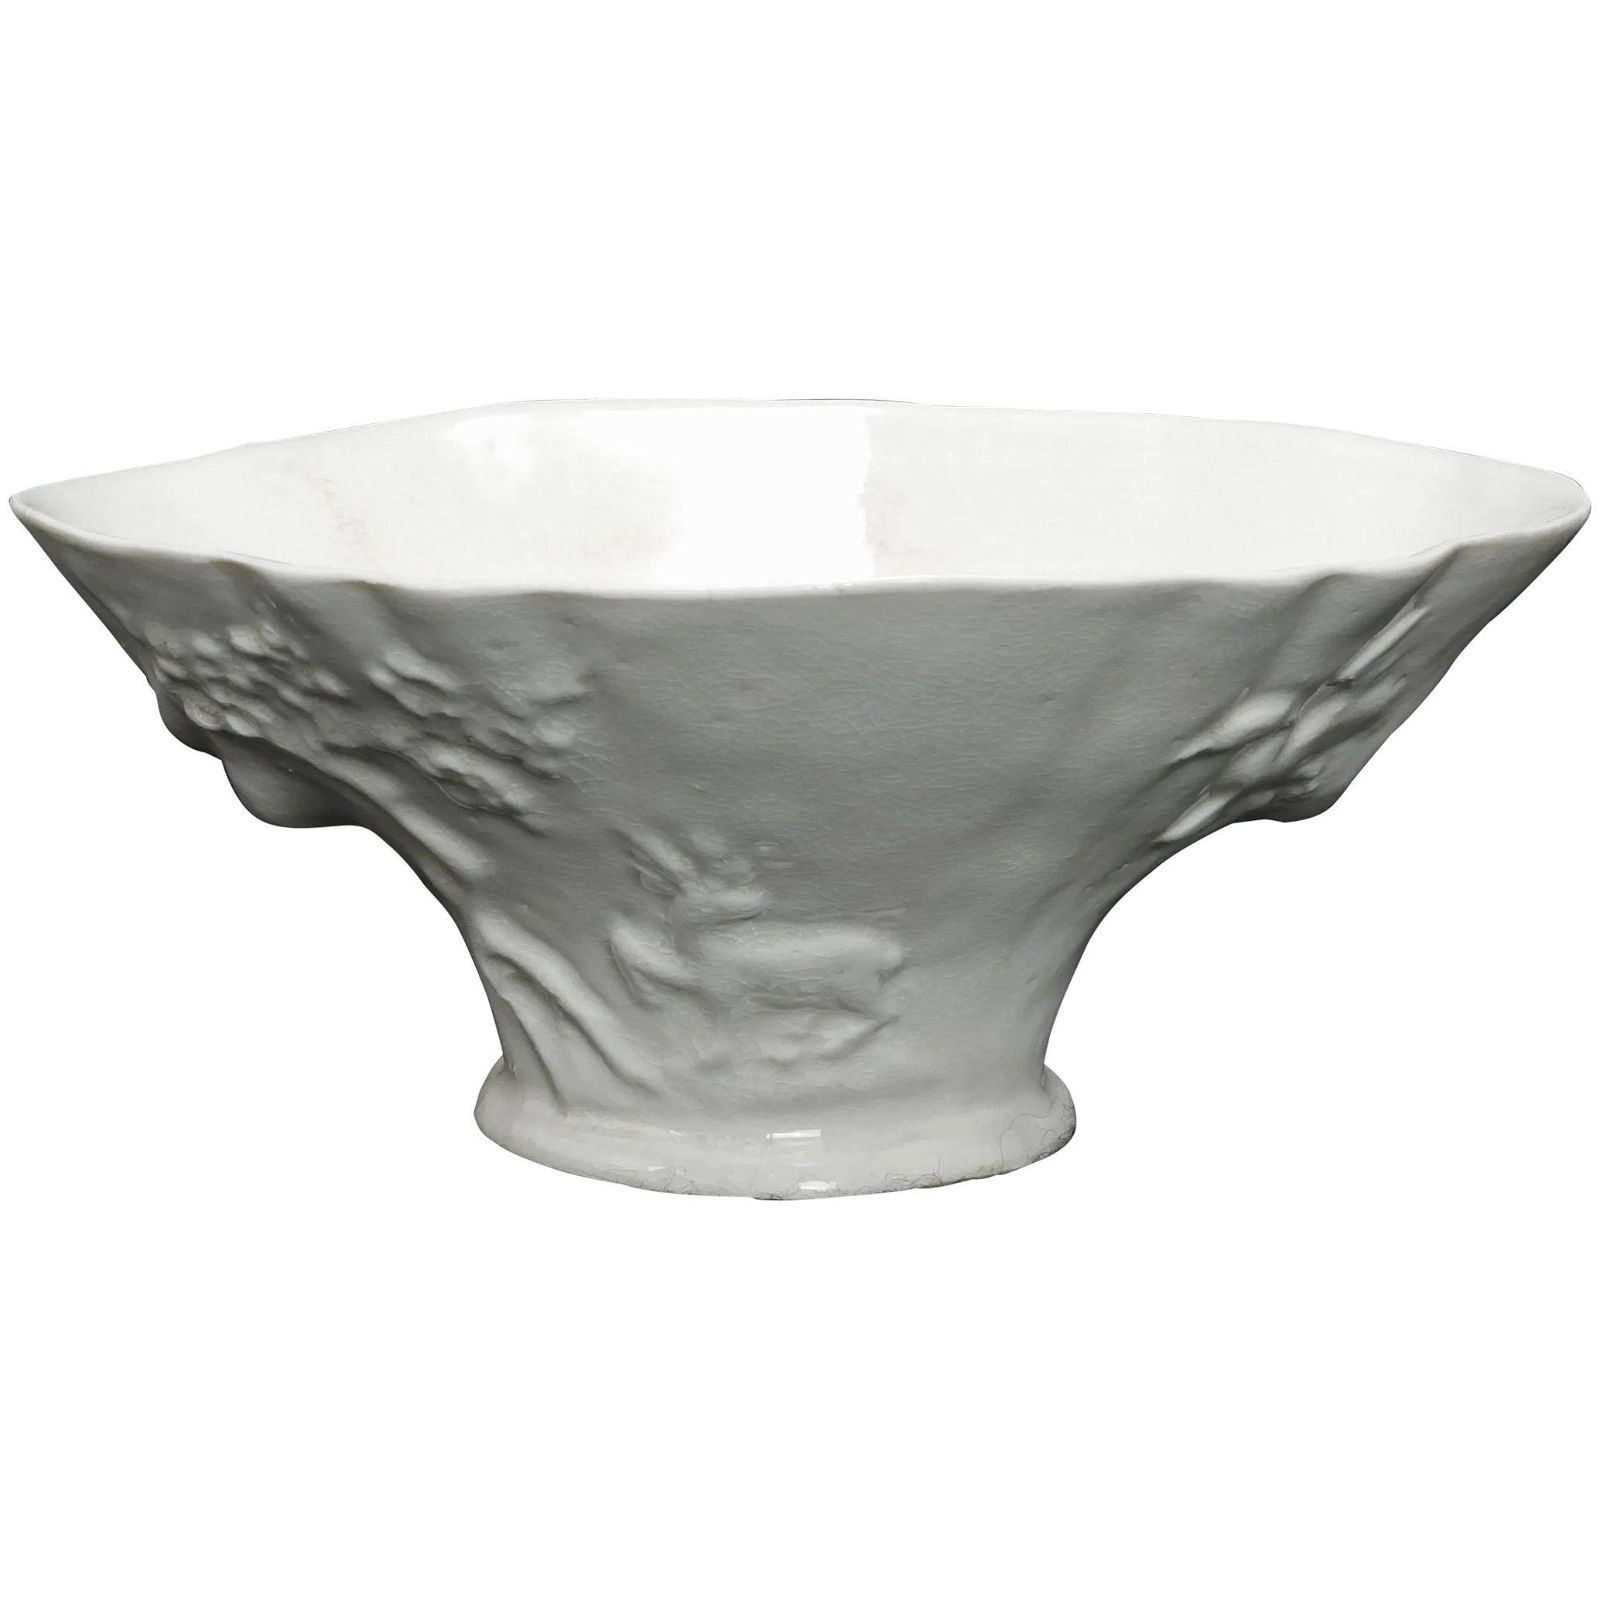 Chinese Republic White Porcelain Libation Cup